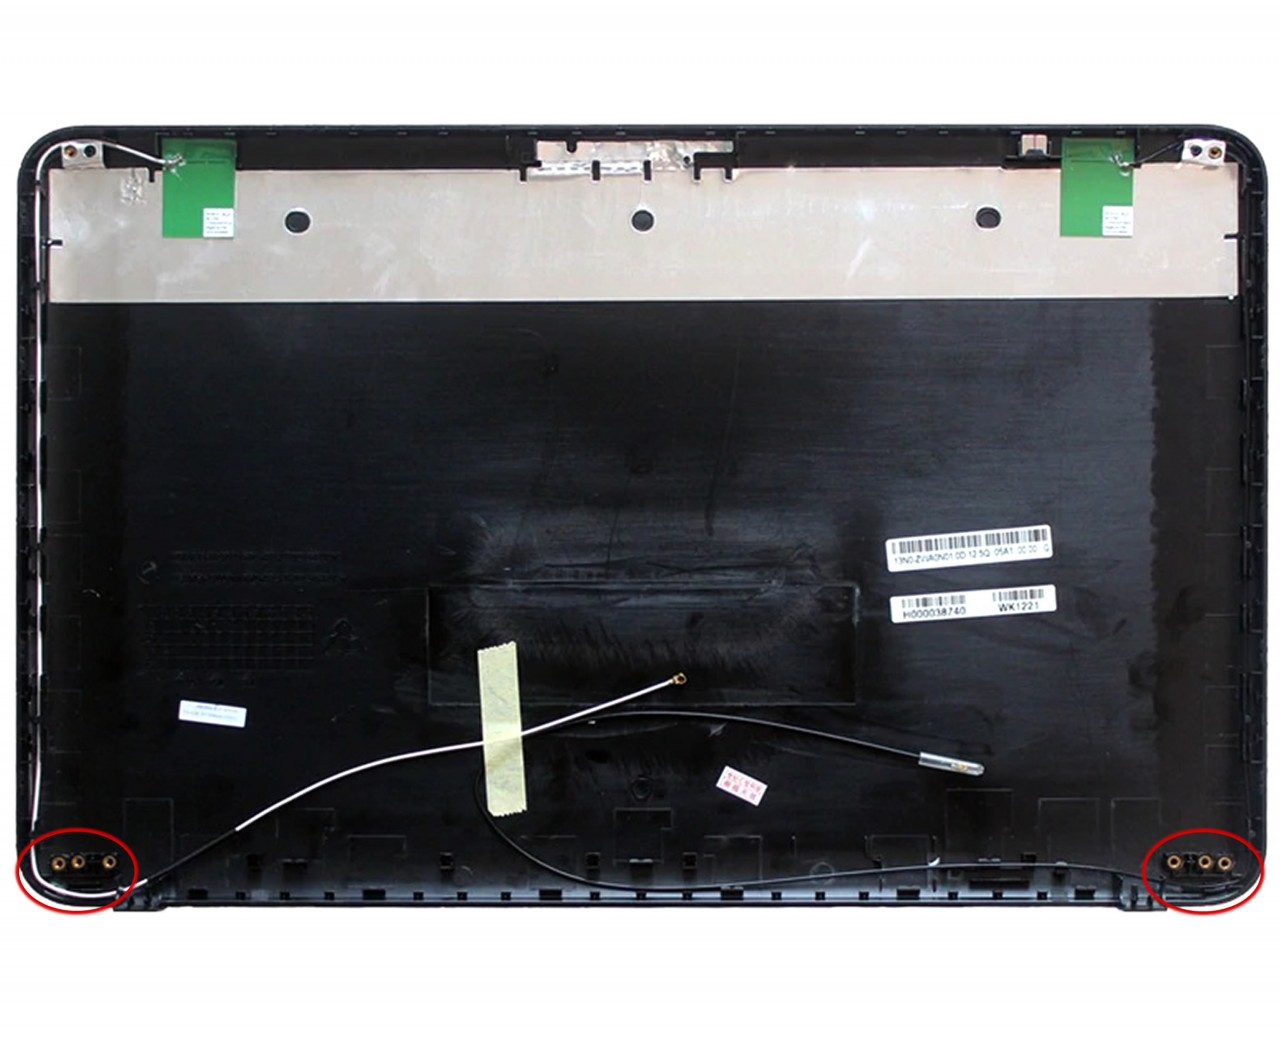 Capac Display BackCover Toshiba Satellite S855 Carcasa Display Neagra cu 3 Suruburi Balamale imagine powerlaptop.ro 2021